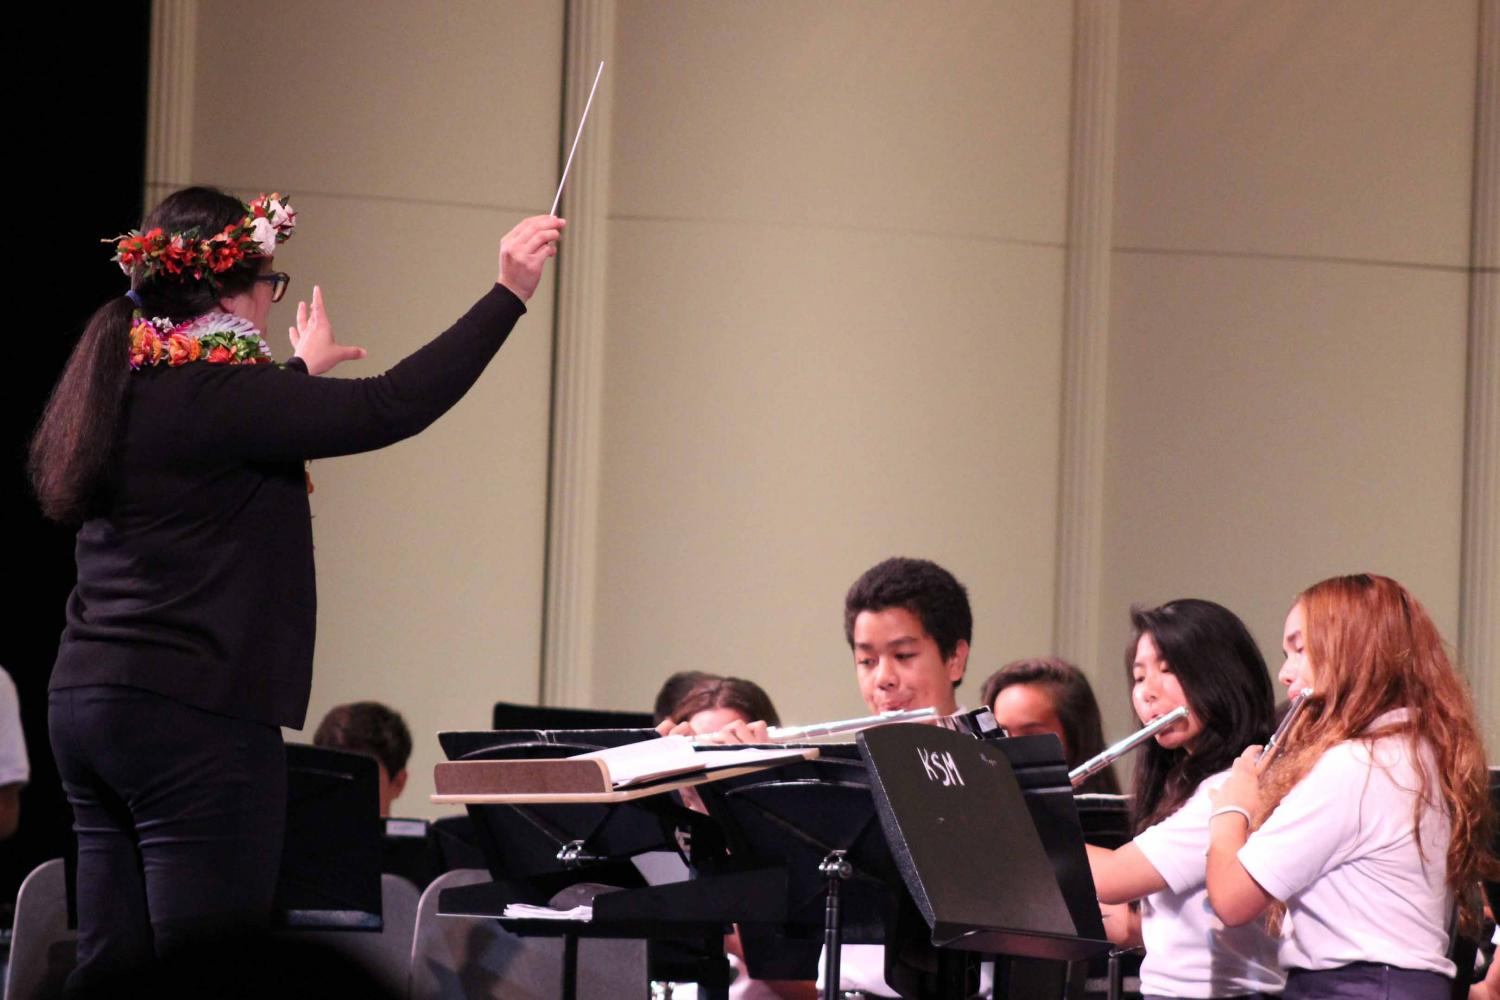 Ms. Jamie Kim conducts middle school band members. The Kamehameha Schools Maui Band Program had an end of the year band concert, May 17, at 6:30 p.m. in Keōpūolani Hale.